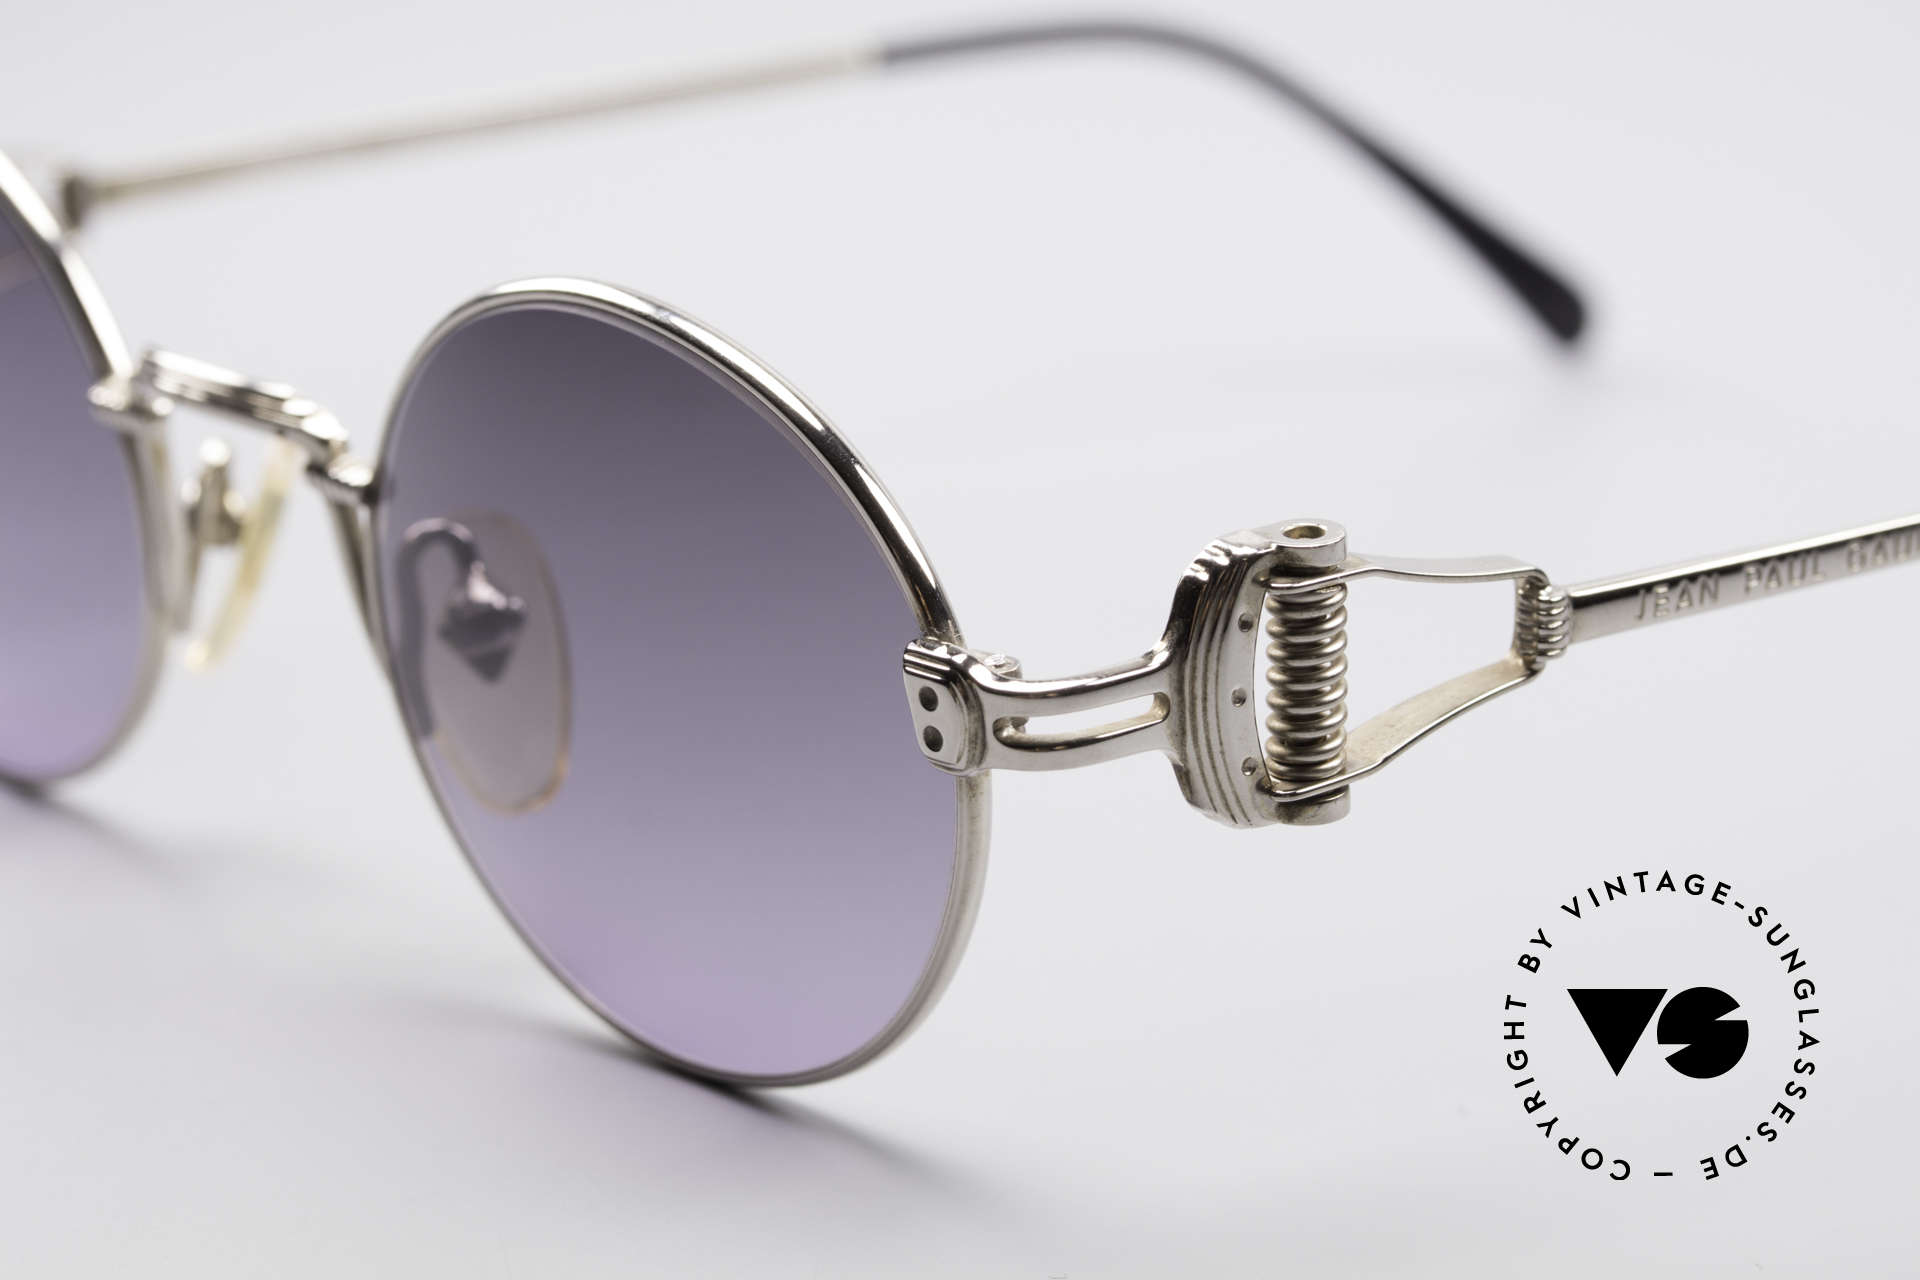 Jean Paul Gaultier 55-5106 Steampunk Sunglasses, gray-purple gradient lenses; just fancy & 100% UV prot., Made for Men and Women